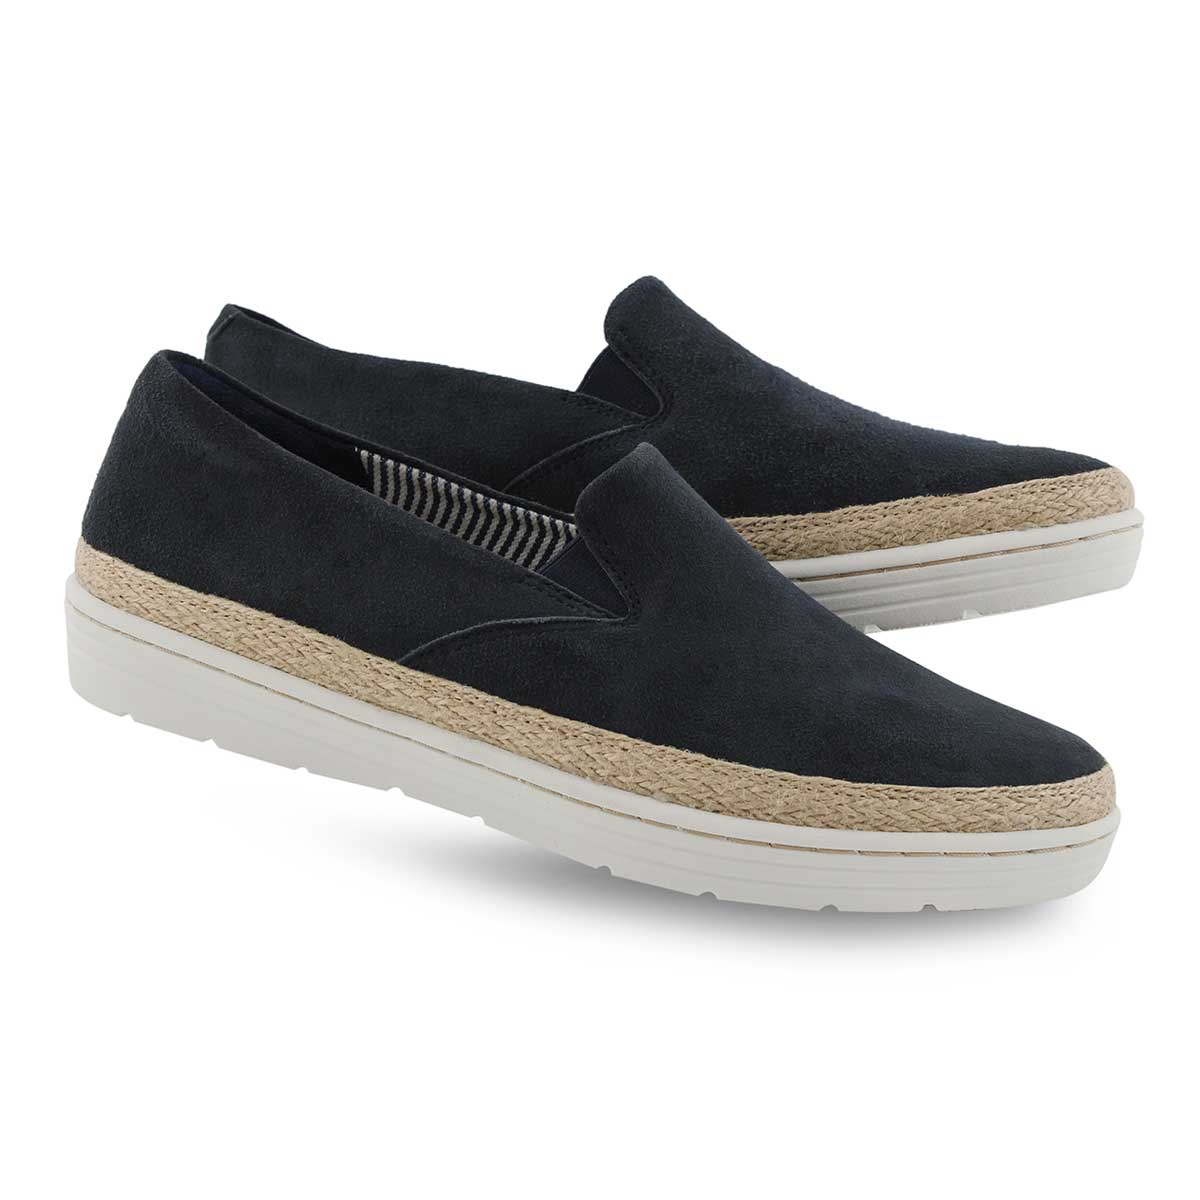 Lds Marie Pearl navy casual shoe